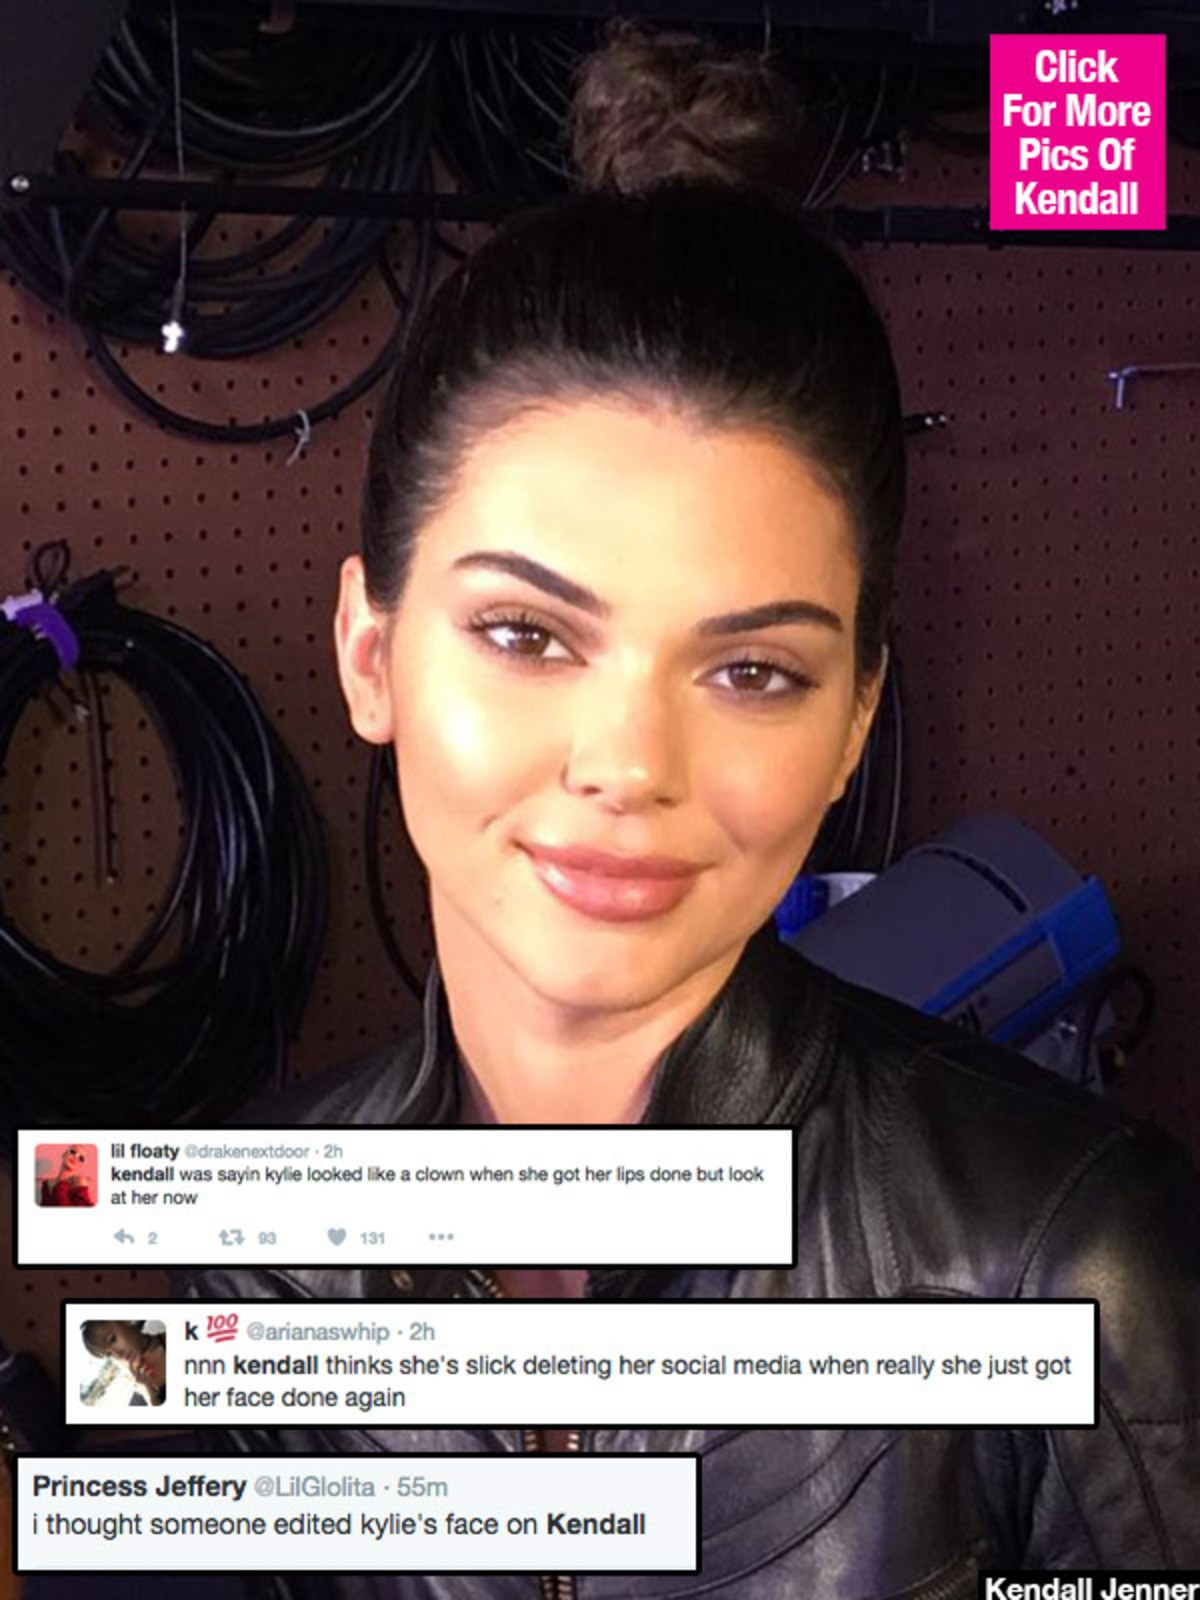 kendall-jenner-lip-injections-after-leaving-instagram-lead